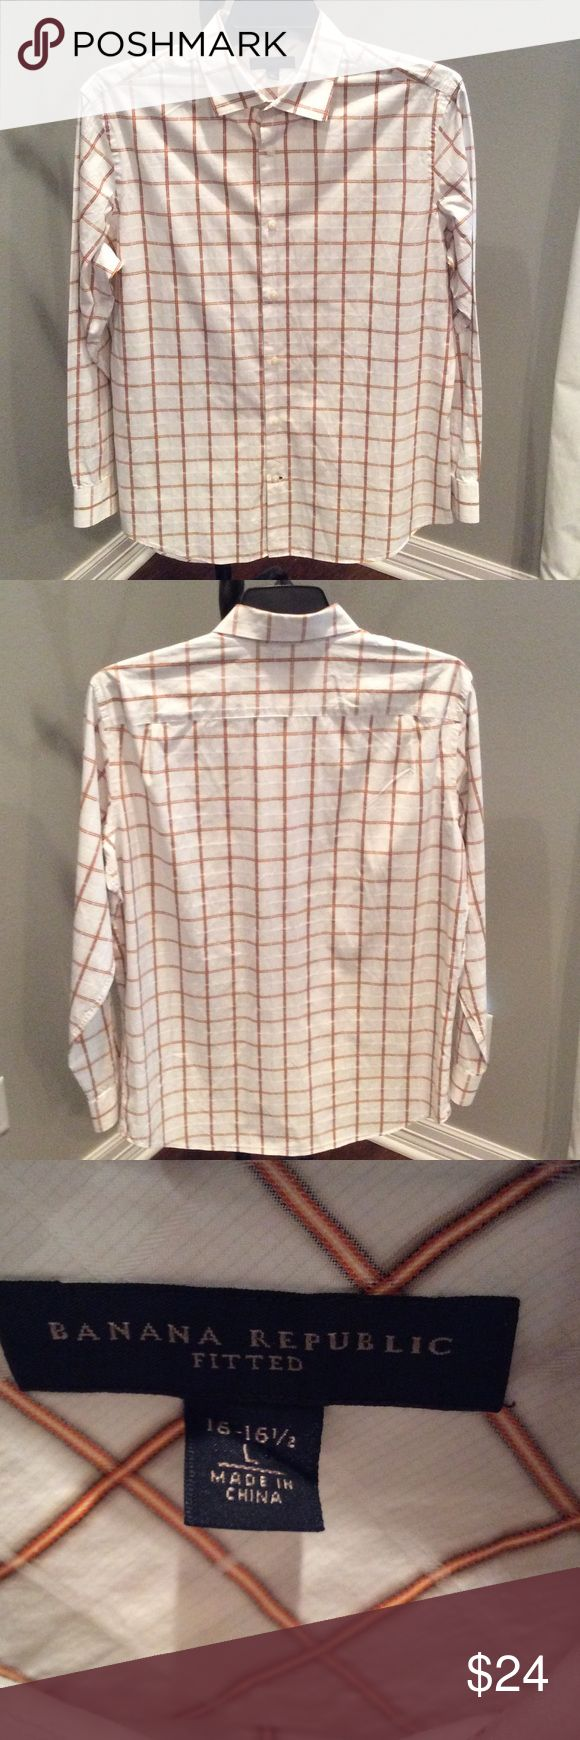 Banana Republic mens shirt Men's 100% cotton shirt.  White with orange, black and gray pattern.  EUC!  Sleeve length 24.75 in.  Back length 31 in. Banana Republic Shirts Casual Button Down Shirts